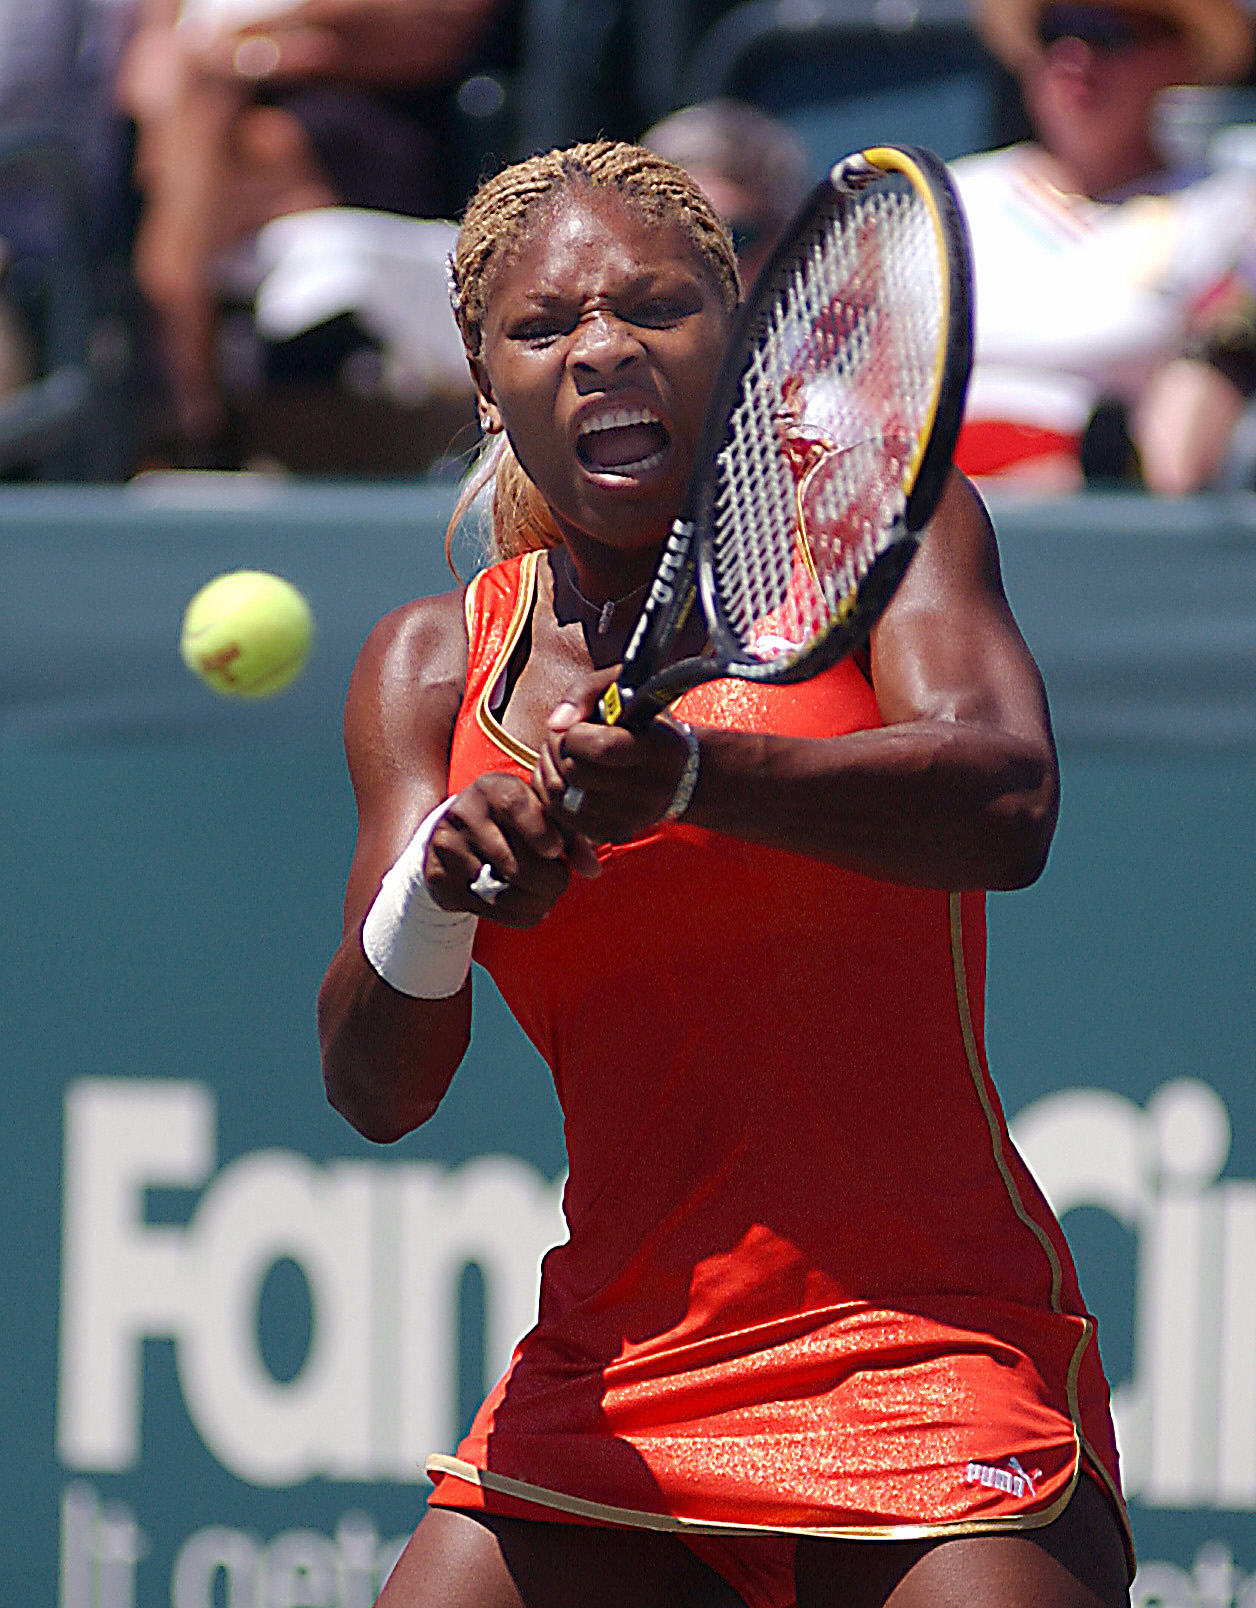 File:Serena Williams, 2002 Family Circle Cup.JPEG - Wikipedia